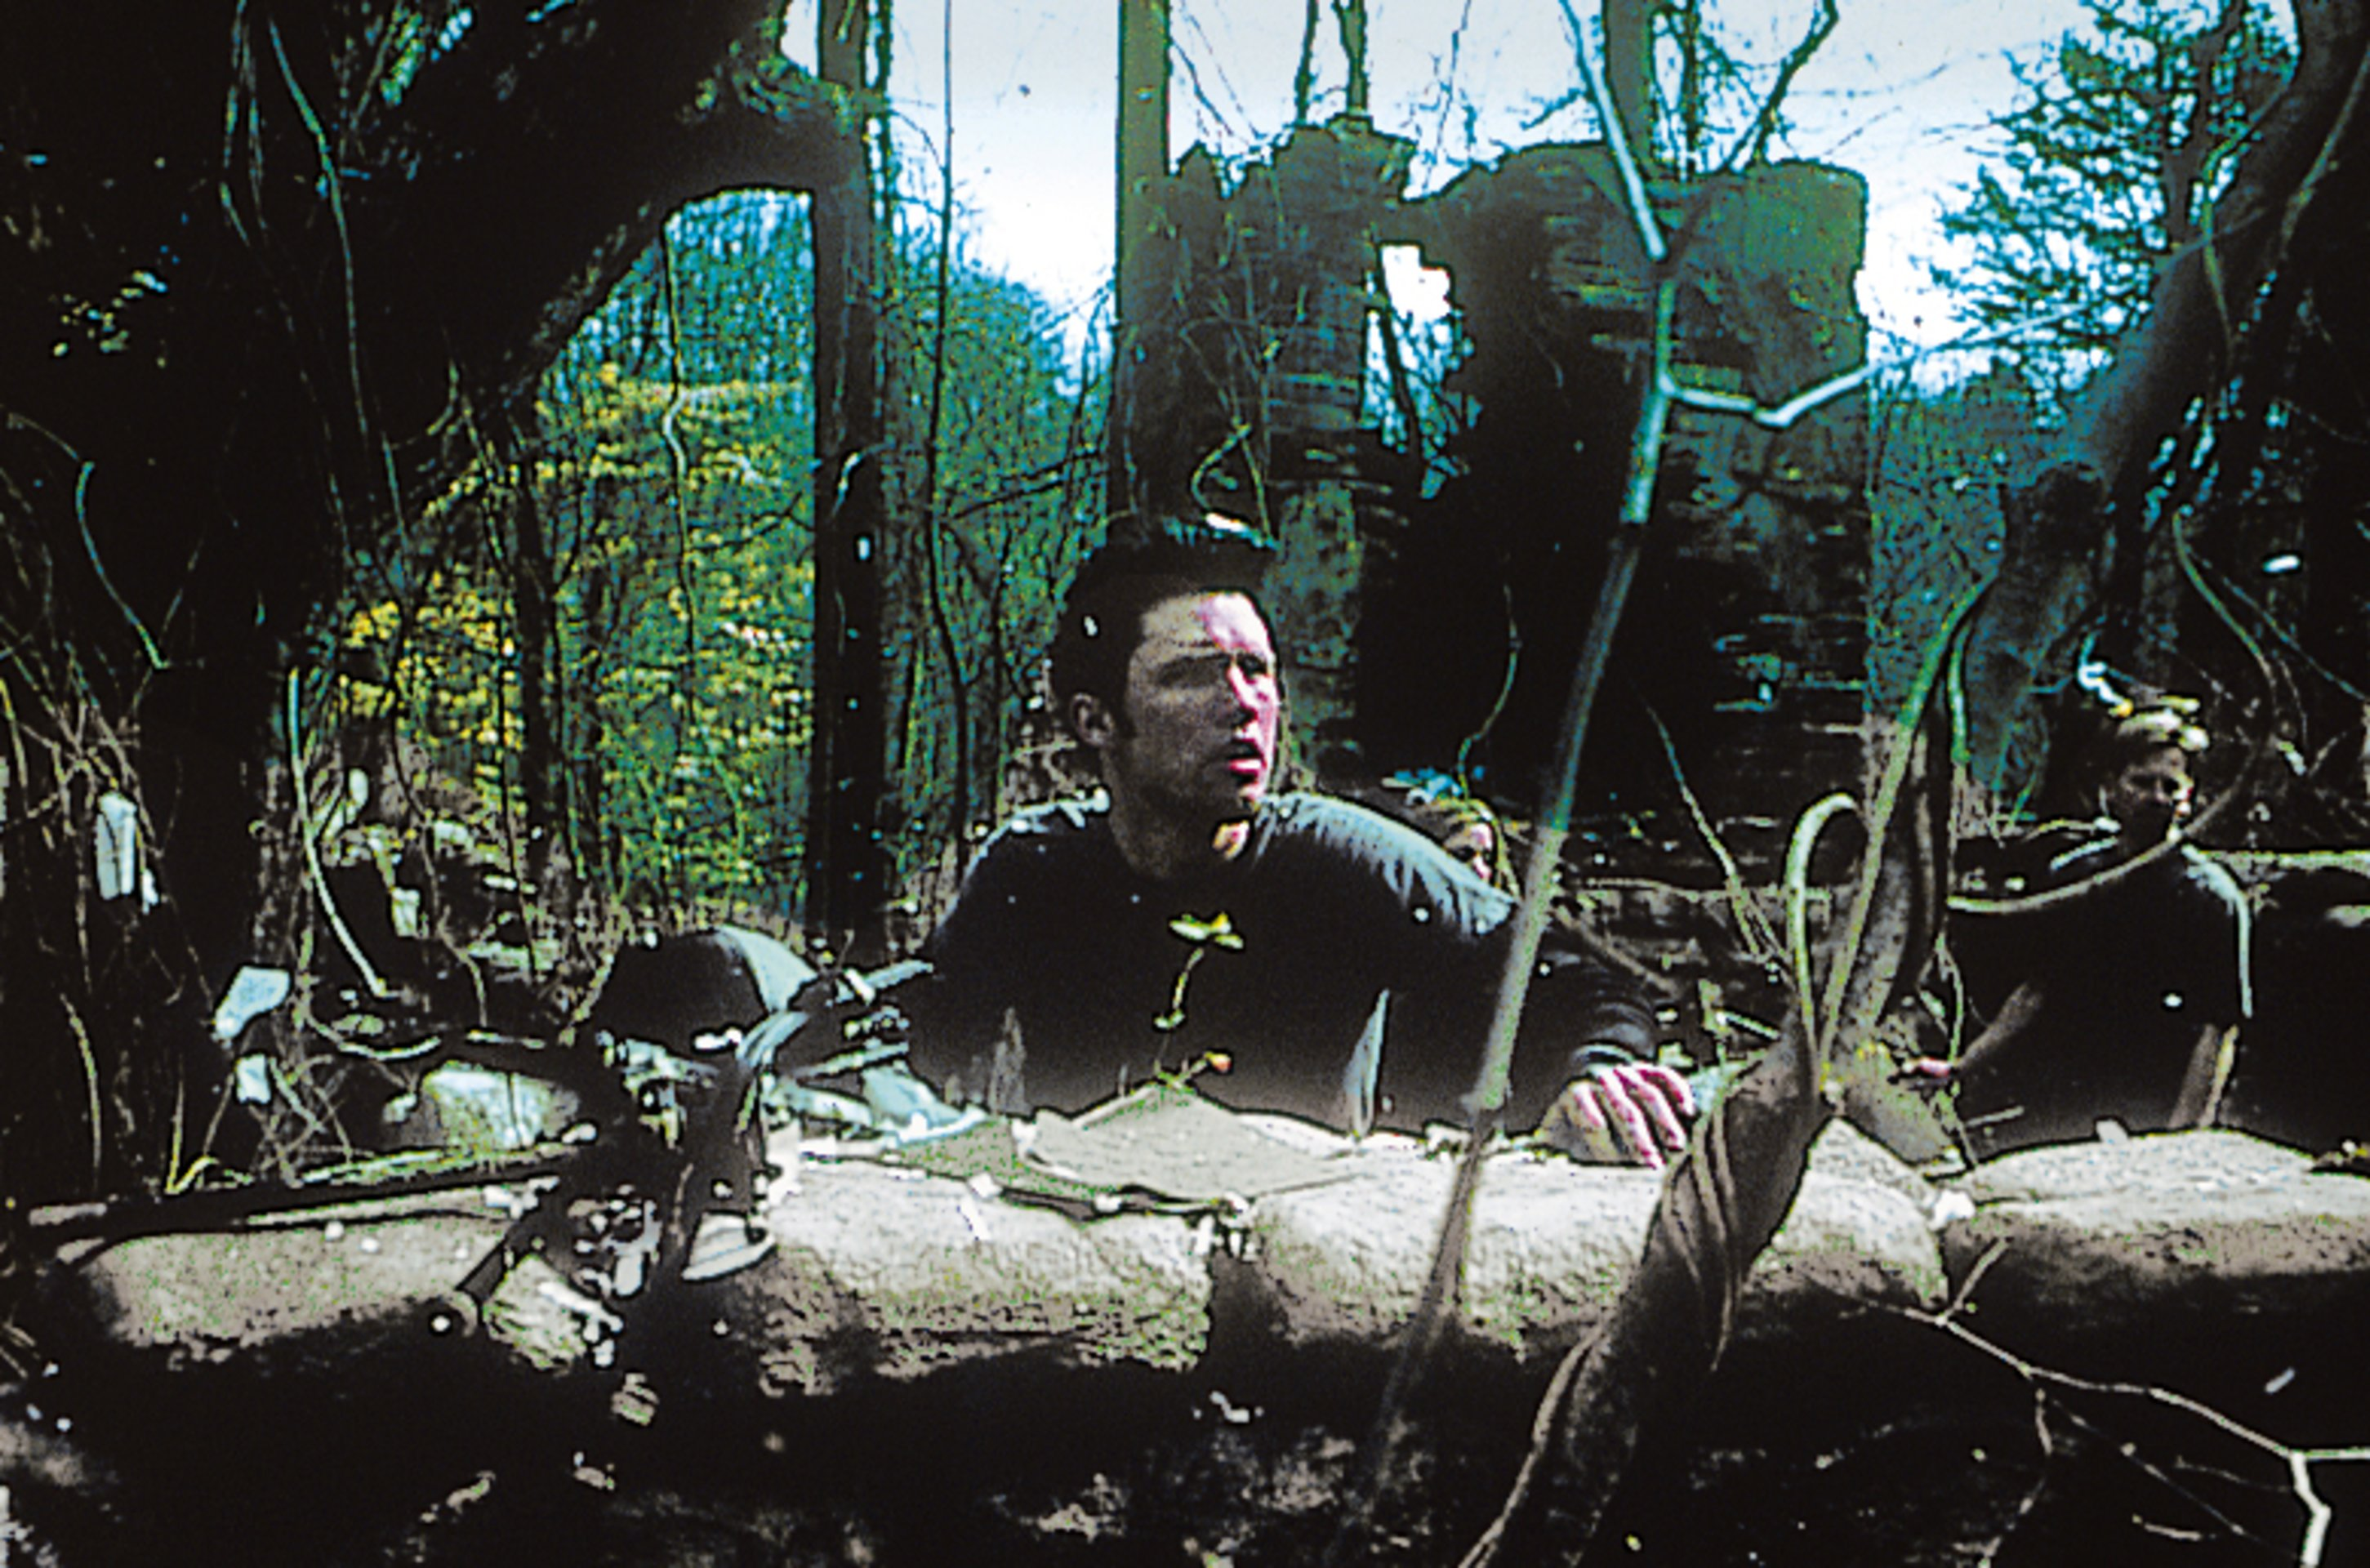 the blair witch project trailer Made on a tiny budget of $60,000, 1999's the blair witch project became one of the most successful independent movies of all time after raking in $2486 million at the box office.